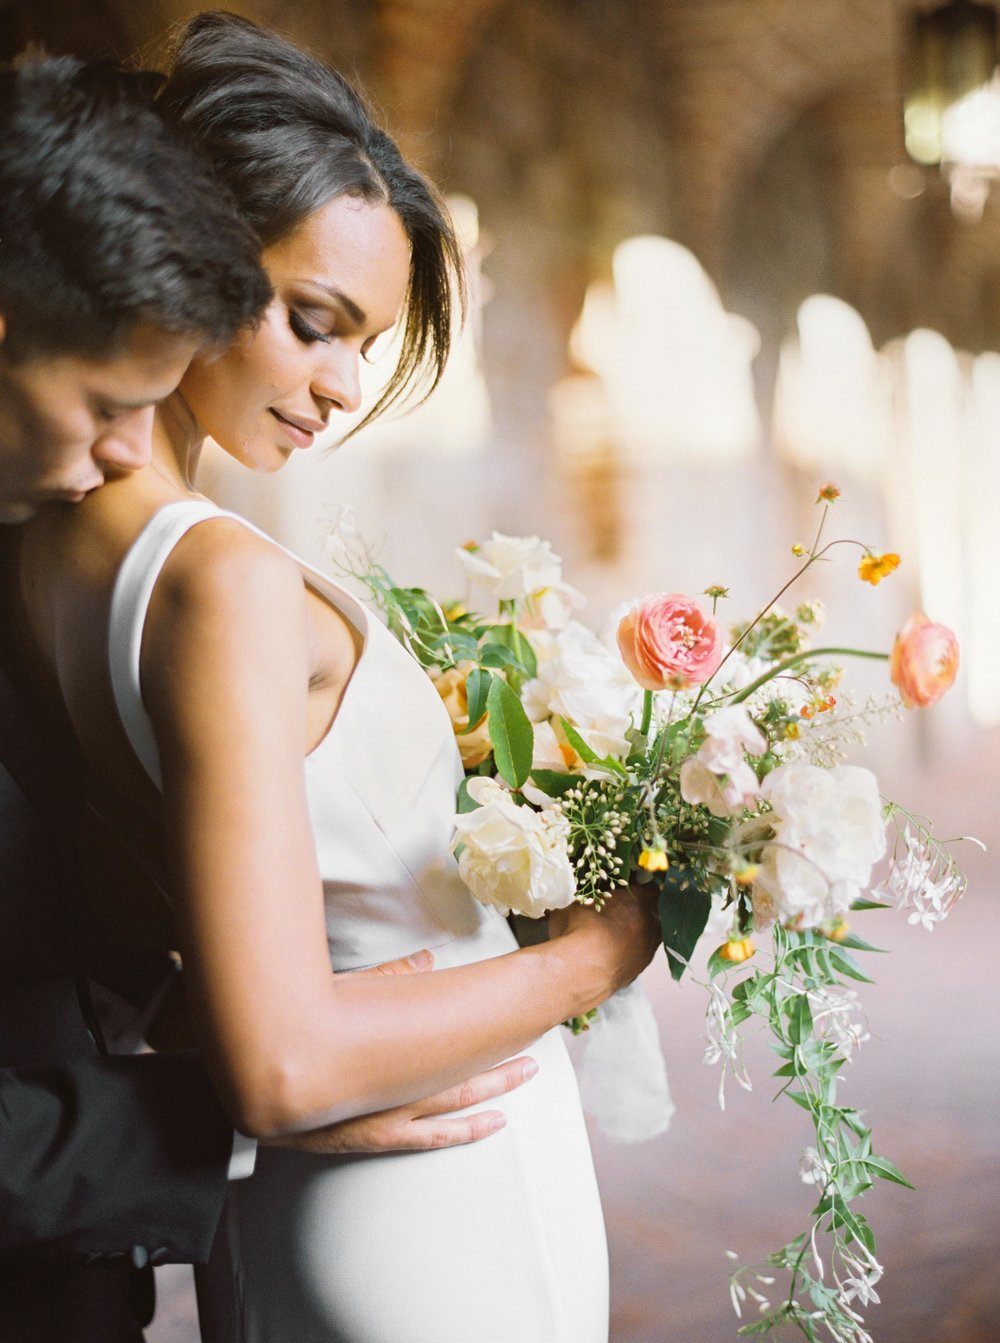 029napa_wedding_photographer_and_videographer_destination_and_elopement_photography.jpg